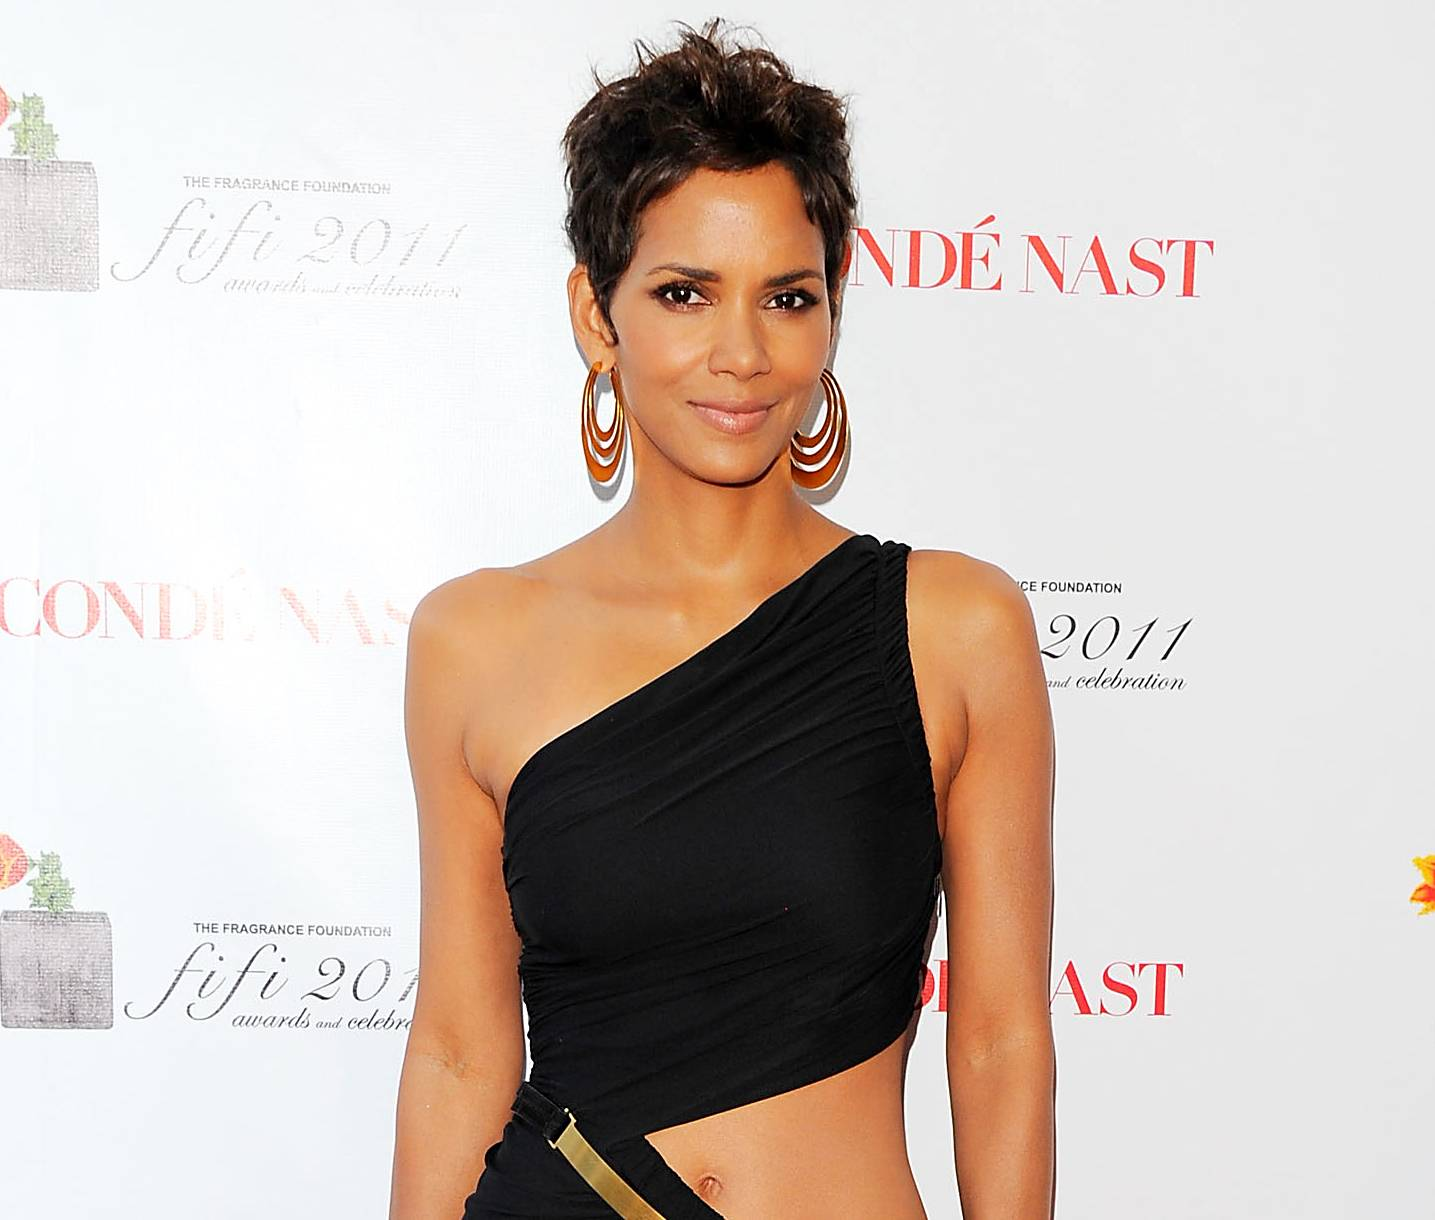 Halle Berry in Waiting to Exhale - Before reaching the top of the A-list in the late 1990s, Berry was competing for limited roles with a long list of beautiful and talented Black actresses. She lost the part of high-powered executive with man troubles Robin Stokes to Lela Rochon.(Photo: Andrew H. Walker/Getty Images)